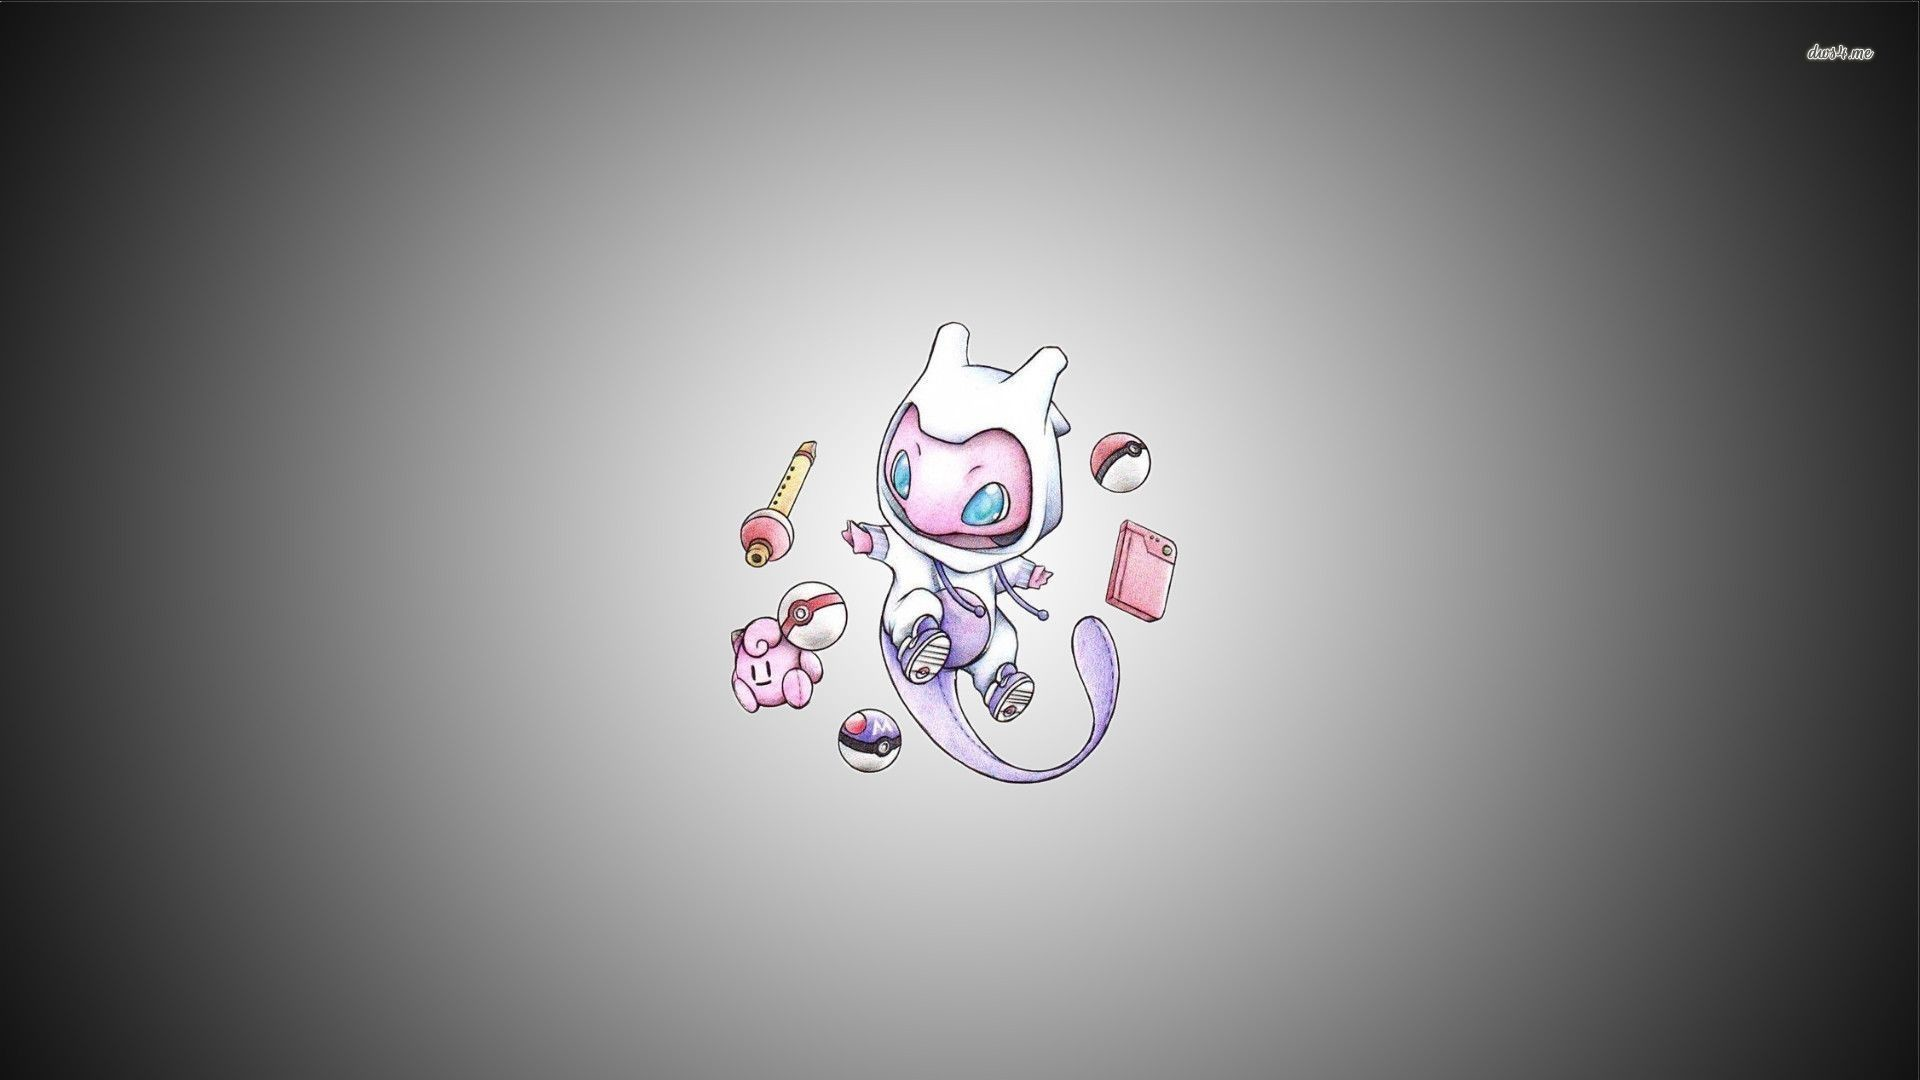 1920x1080  Cutest Mew's wallpaper ever!